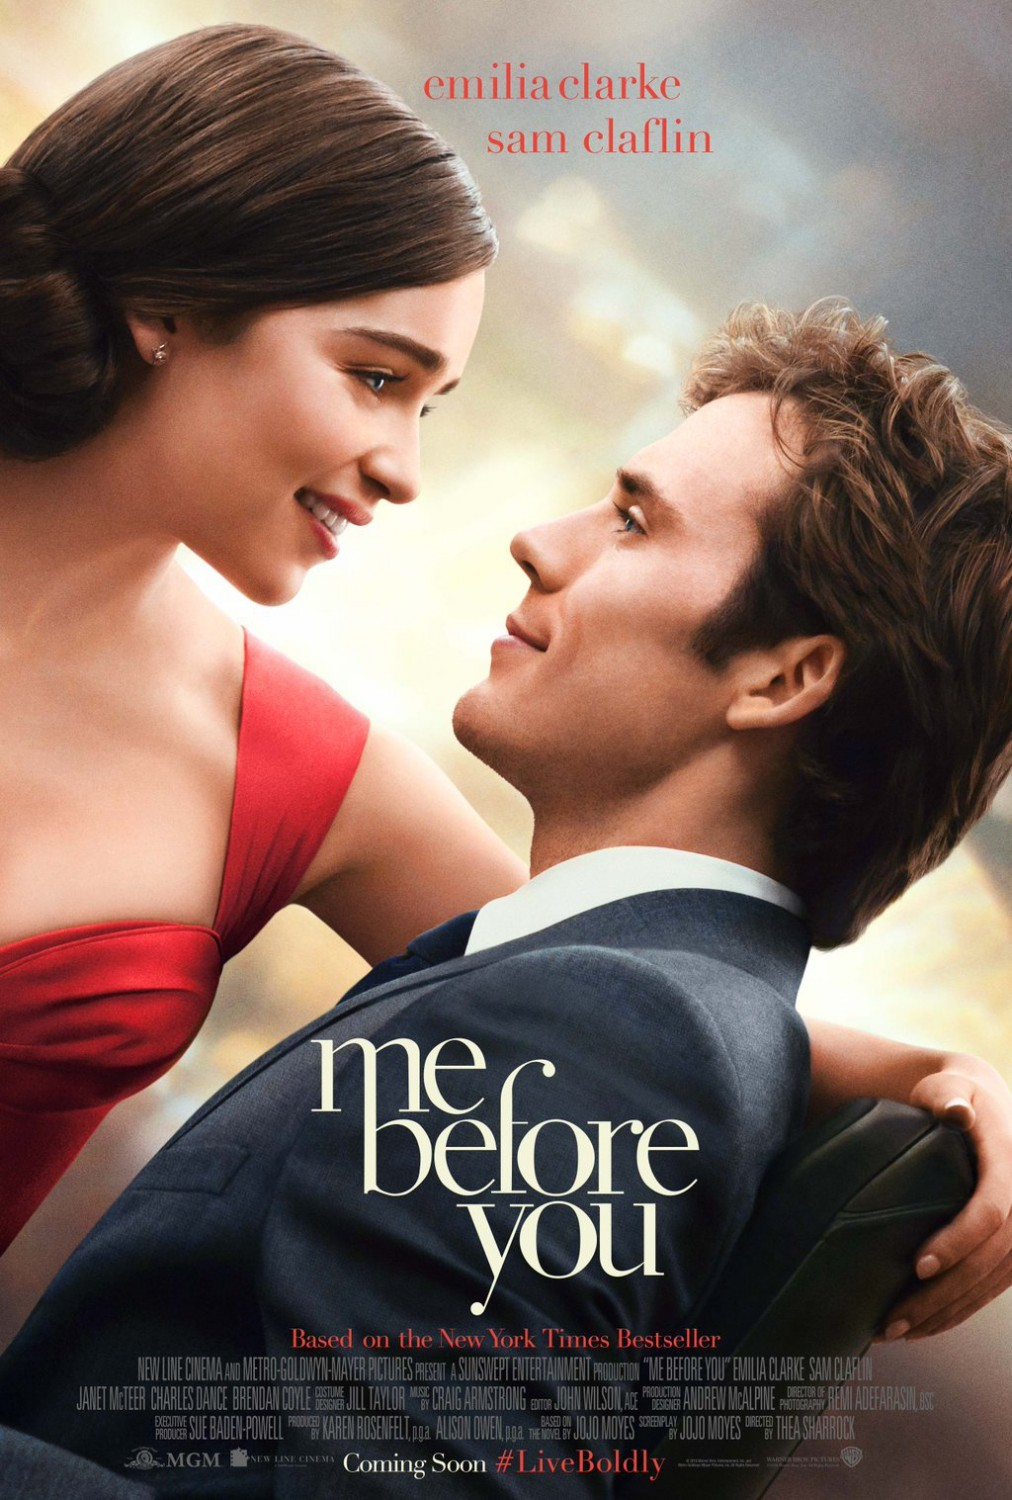 me-before-you-poster01.jpg